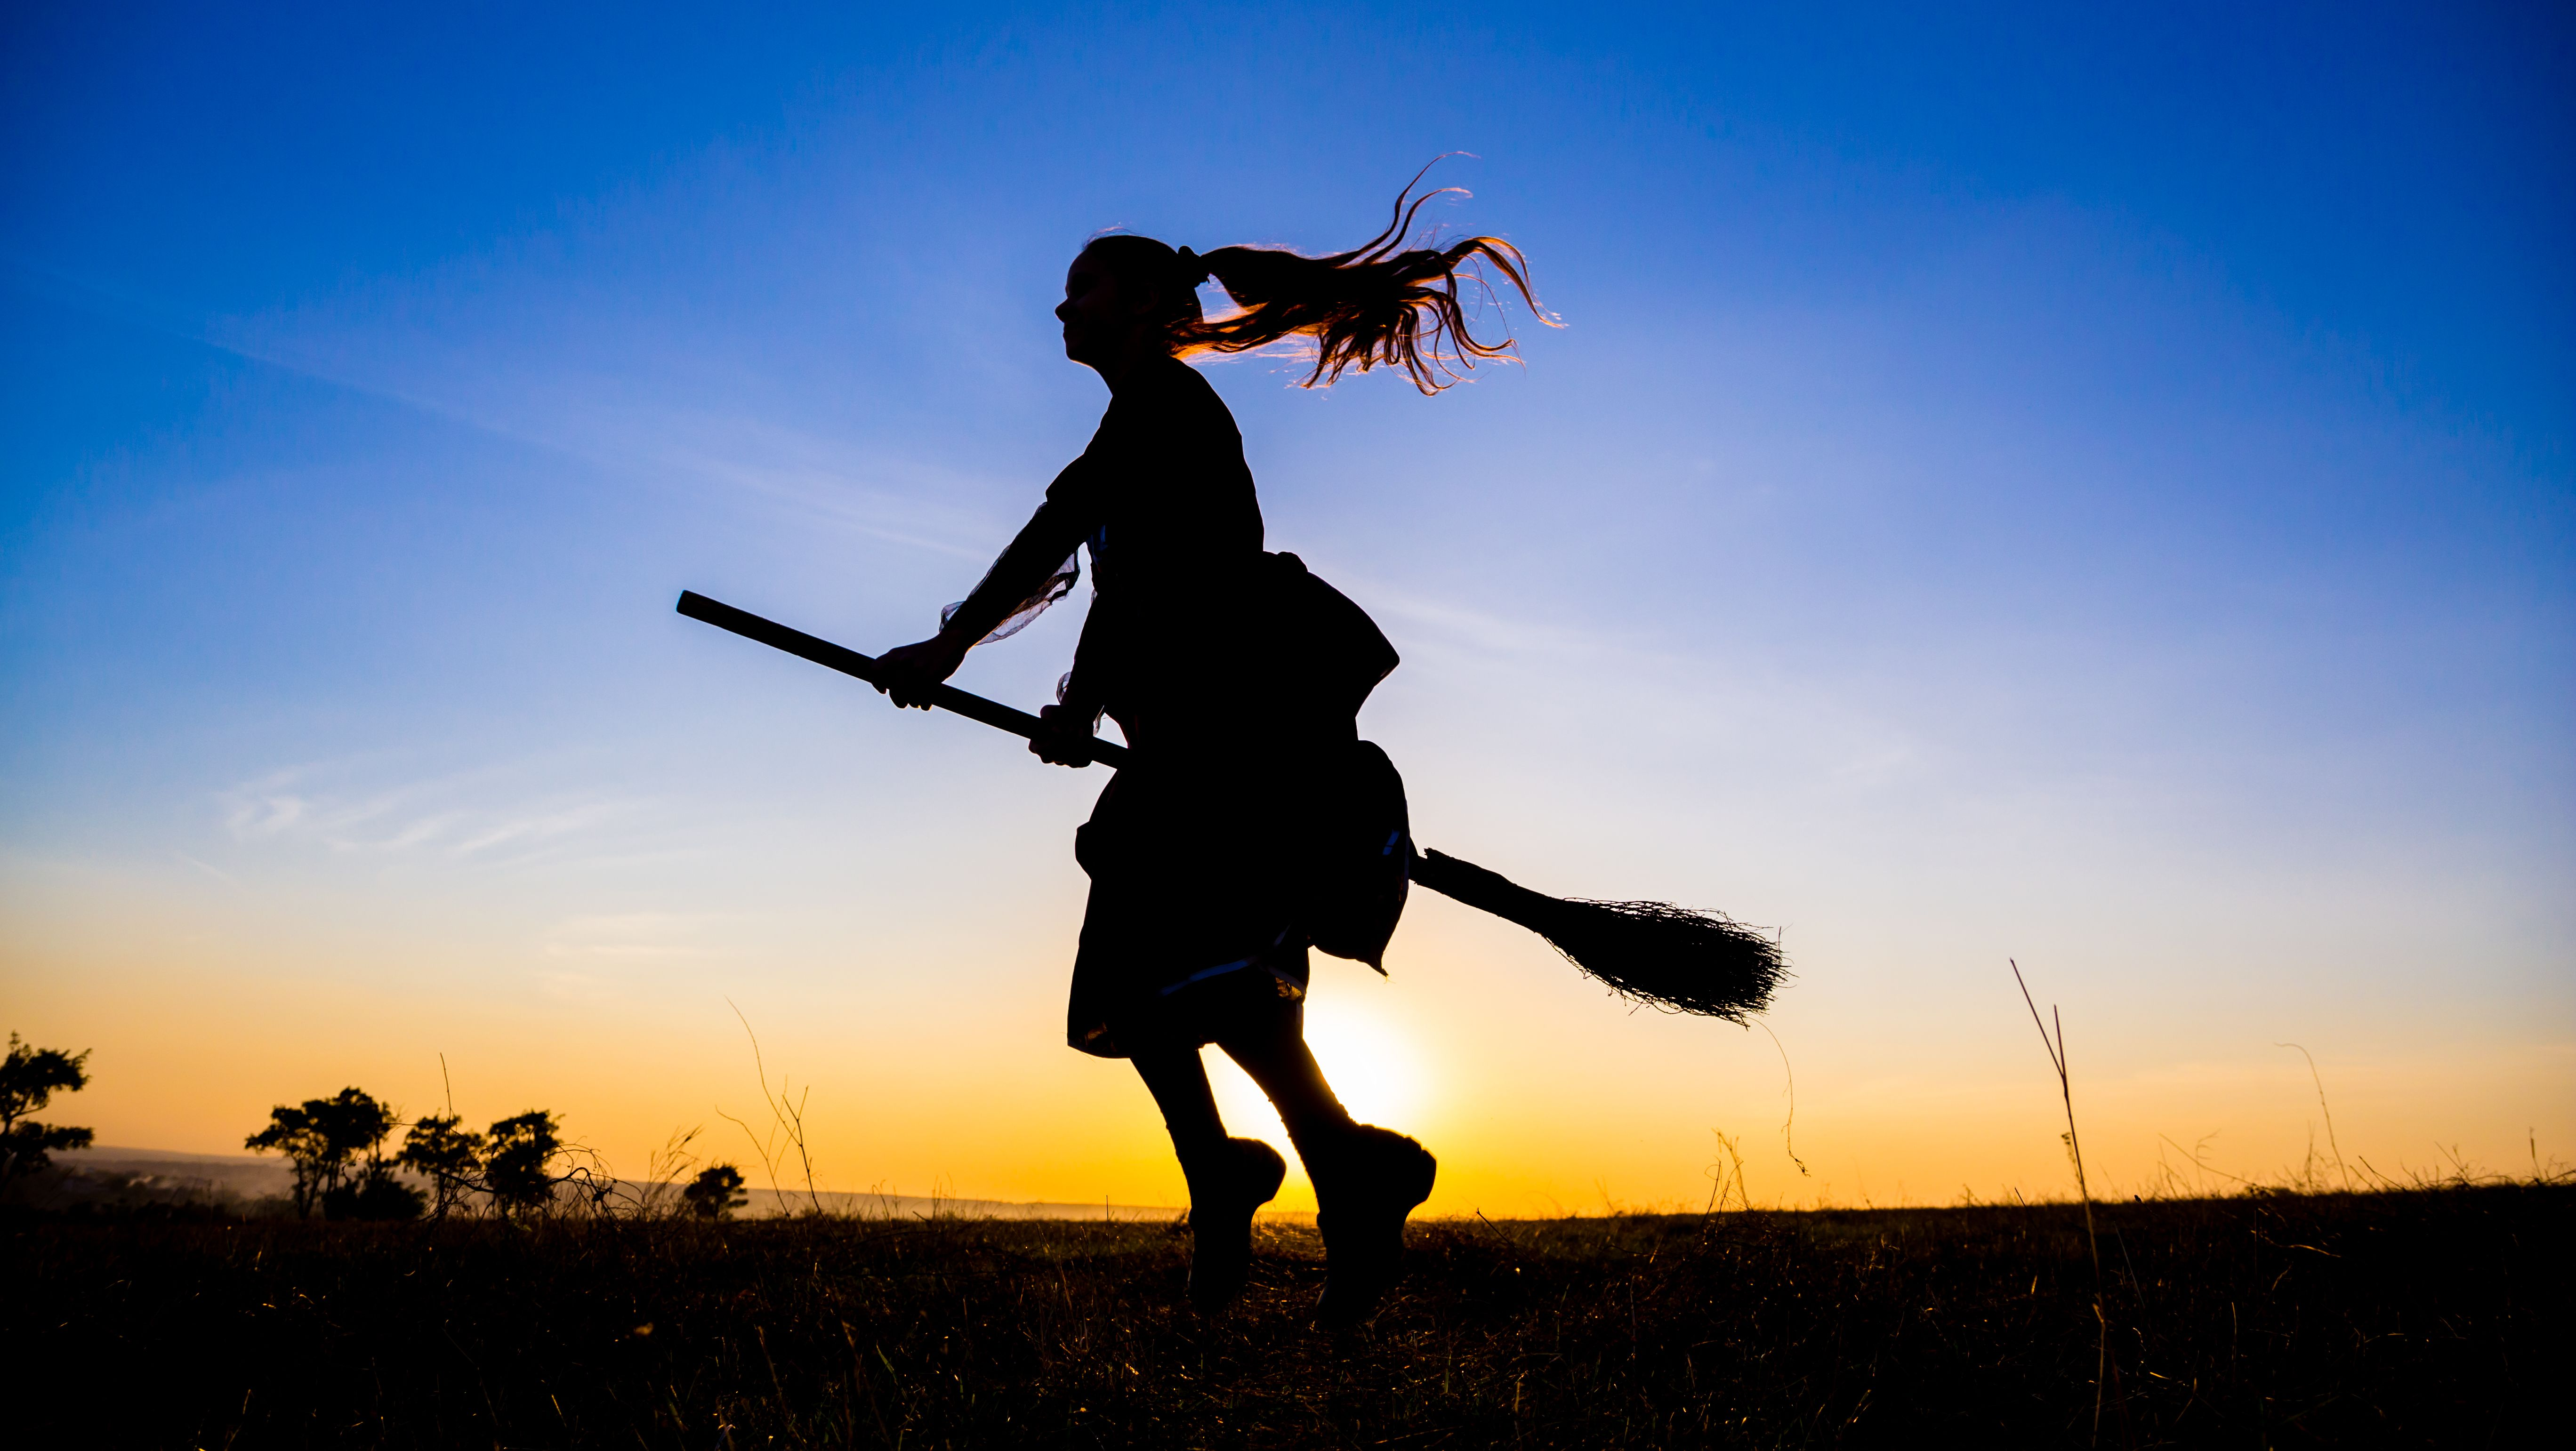 Why Do Witches Ride Brooms? | Mental Floss